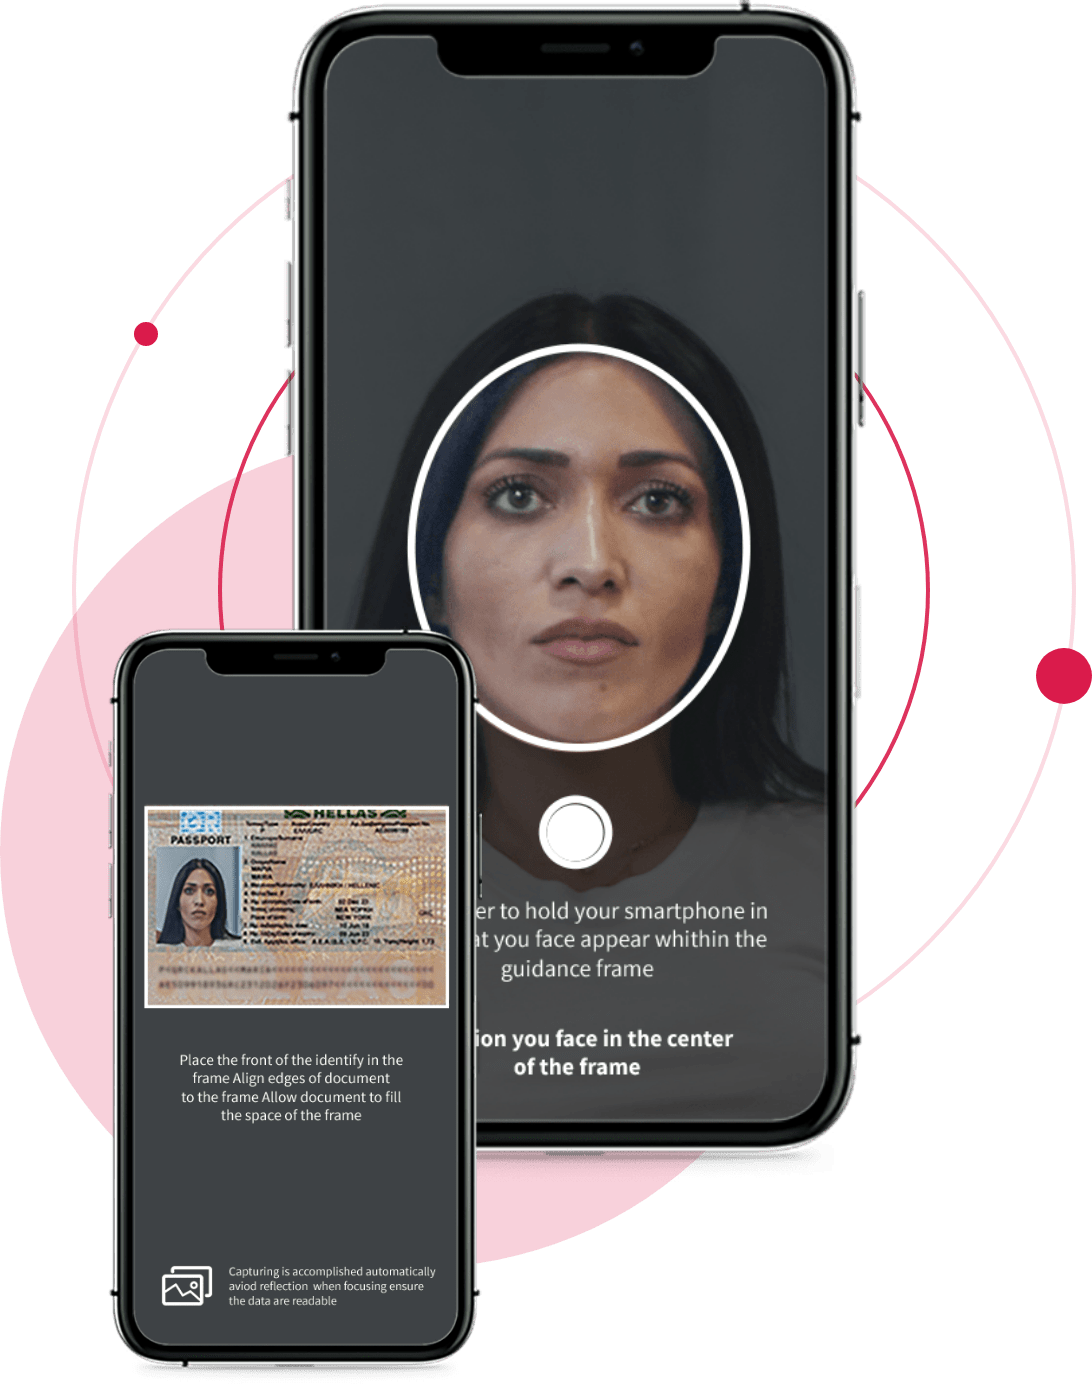 Face scan and id scan screenshot